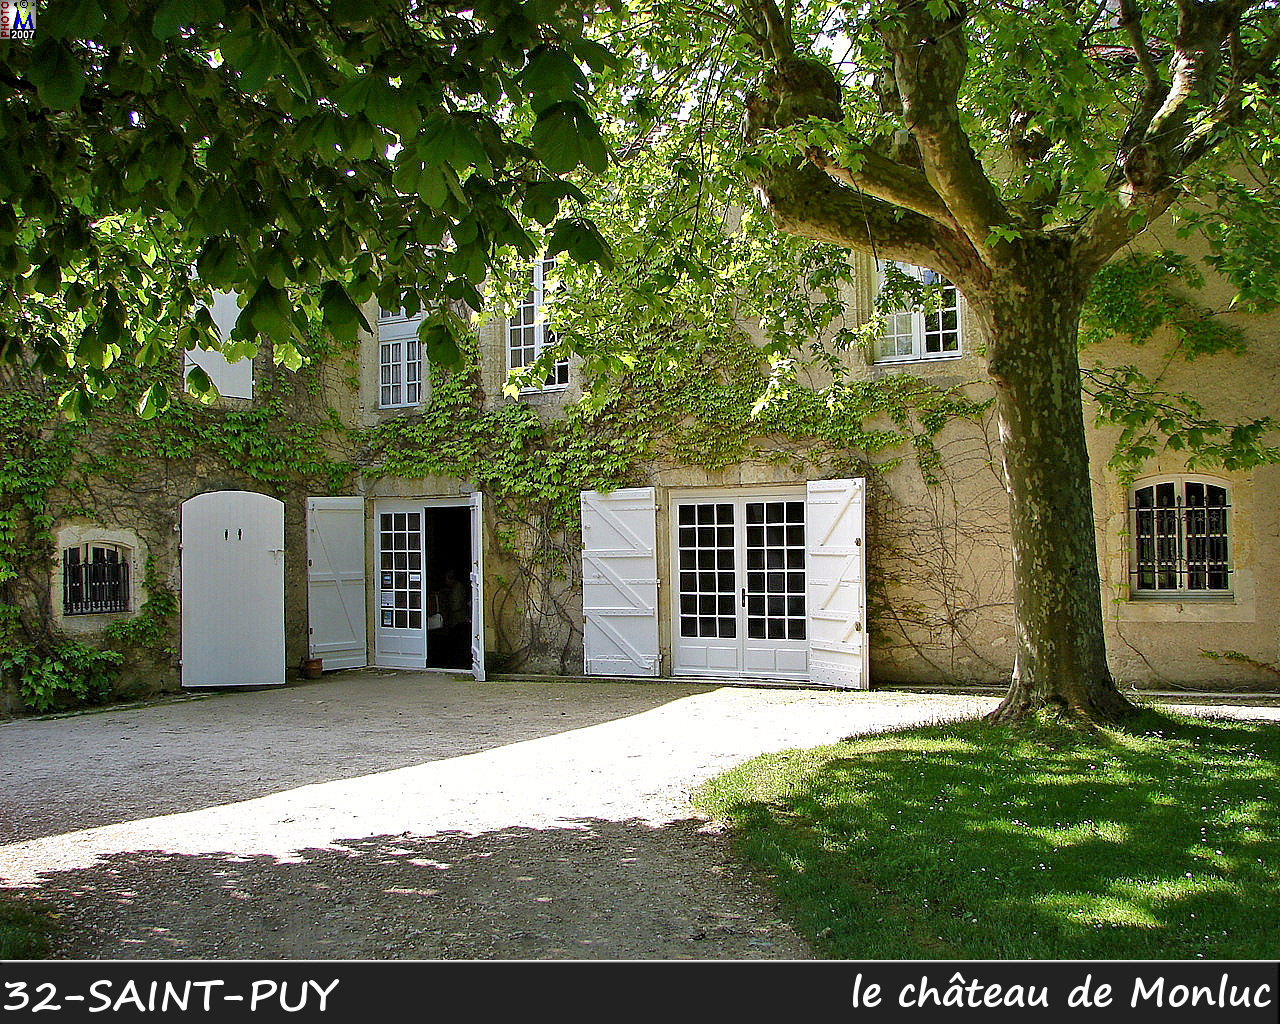 32St-PUY_chateau_120.jpg